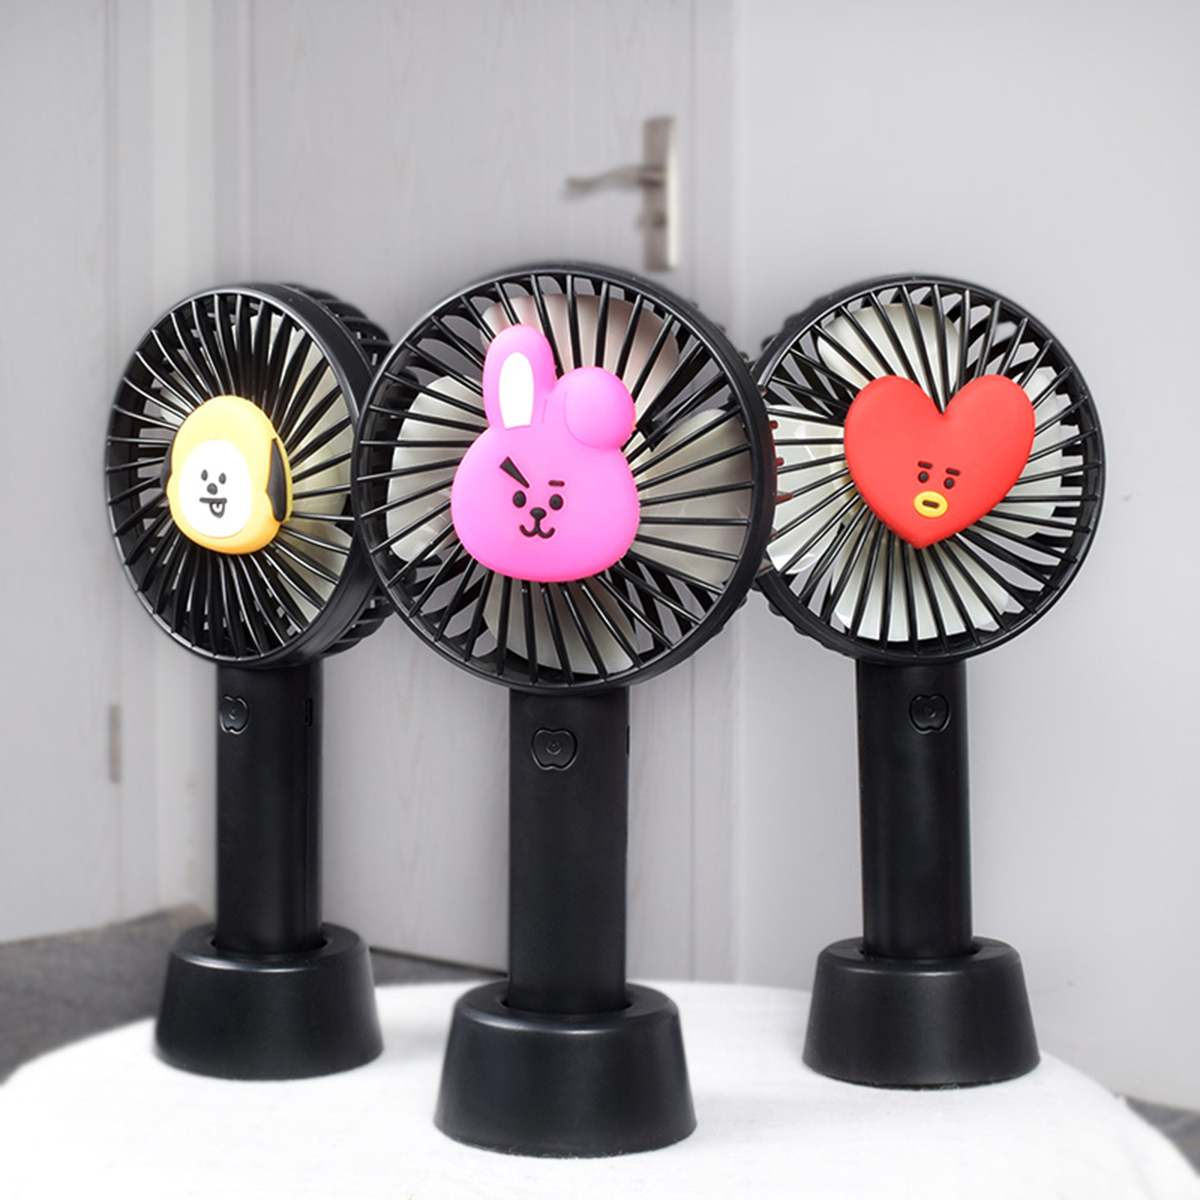 Mini Fans Handheld Portable Fan with Stand USB Rechargeable Battery Cooling Fan Desktop Fan for Travel Outdoor Home OfficeMini Fans Handheld Portable Fan with Stand USB Rechargeable Battery Cooling Fan Desktop Fan for Travel Outdoor Home Office